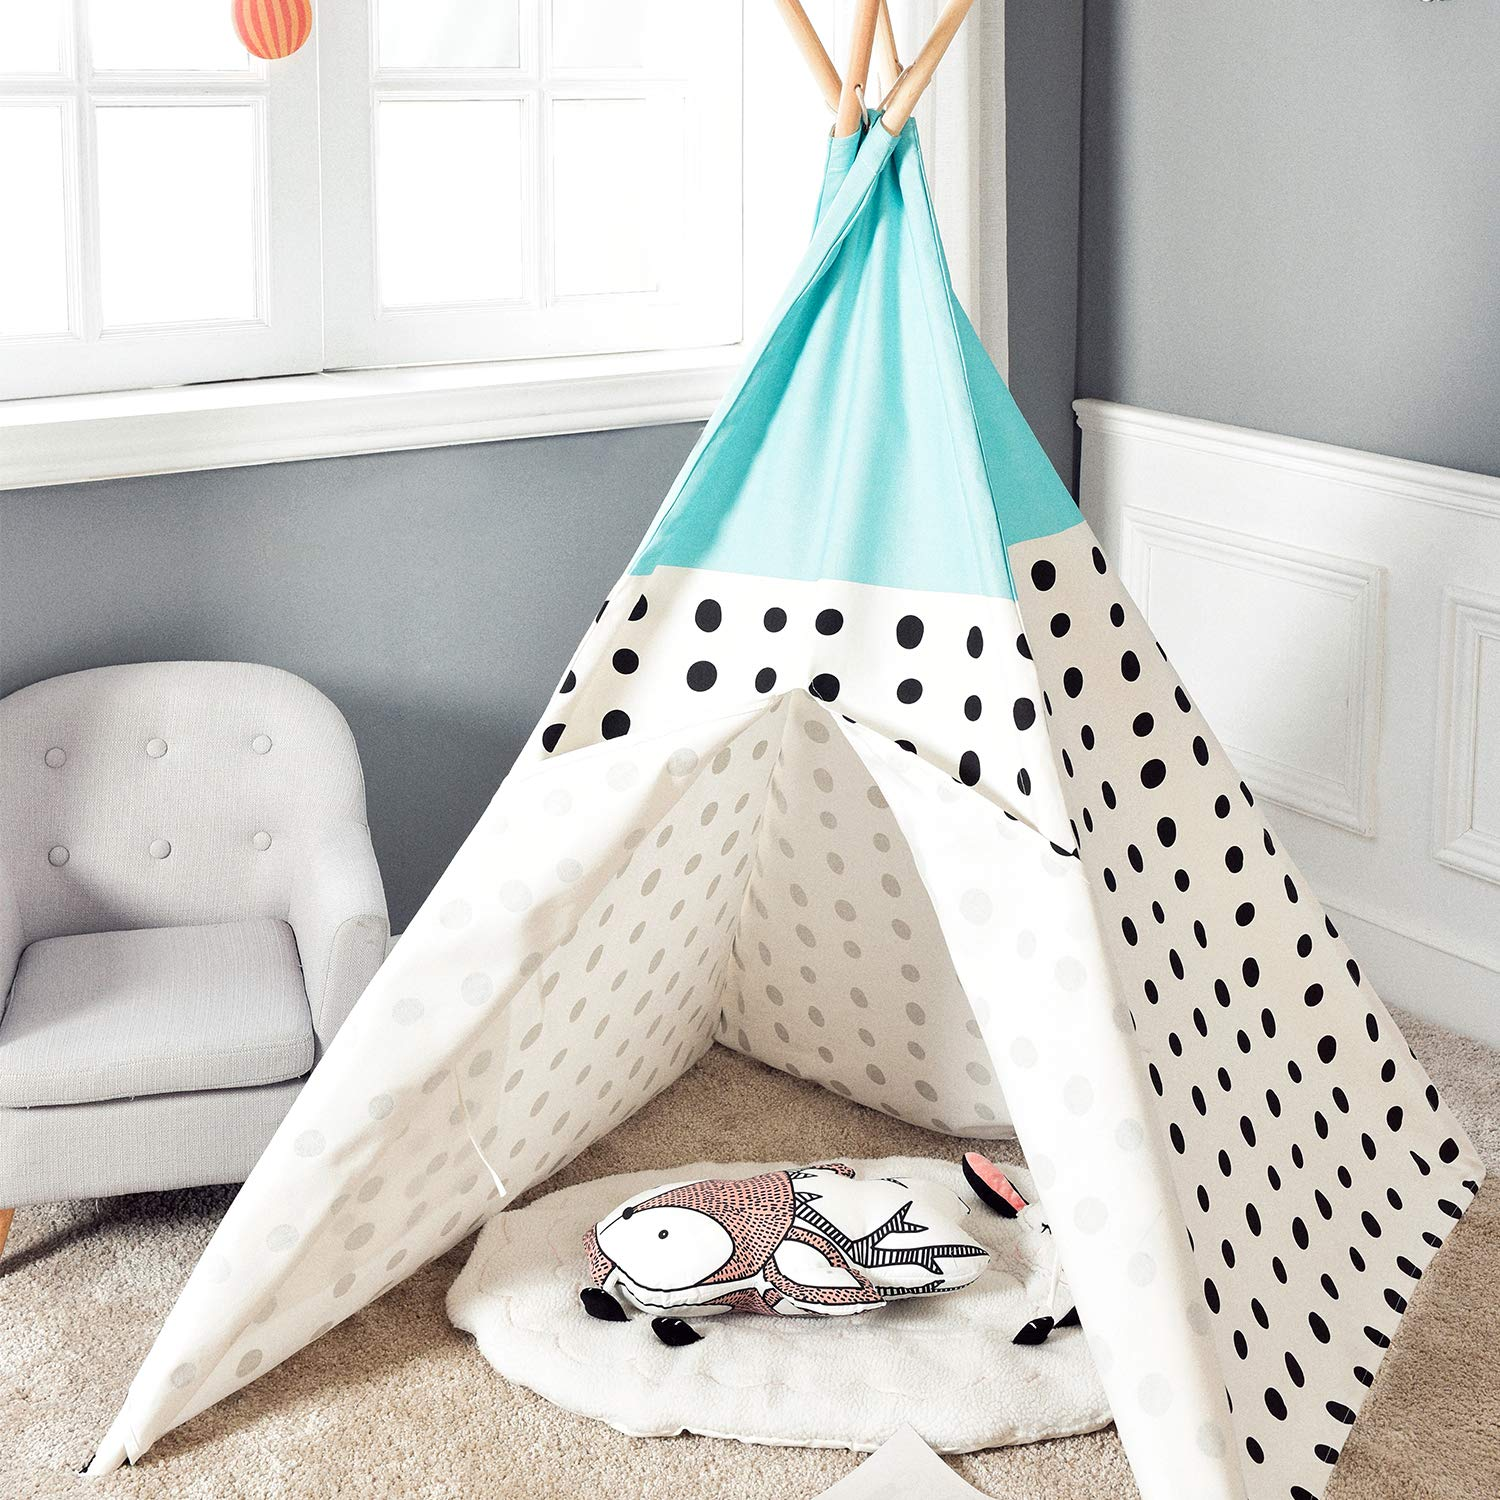 Asweets Teepee Tent for Kids Teepee Play Tent Mat for Boys Indoor Outdoor Play House Tent Indian Canvas Tipi Tent Blue Top Black Point by Asweets (Image #2)